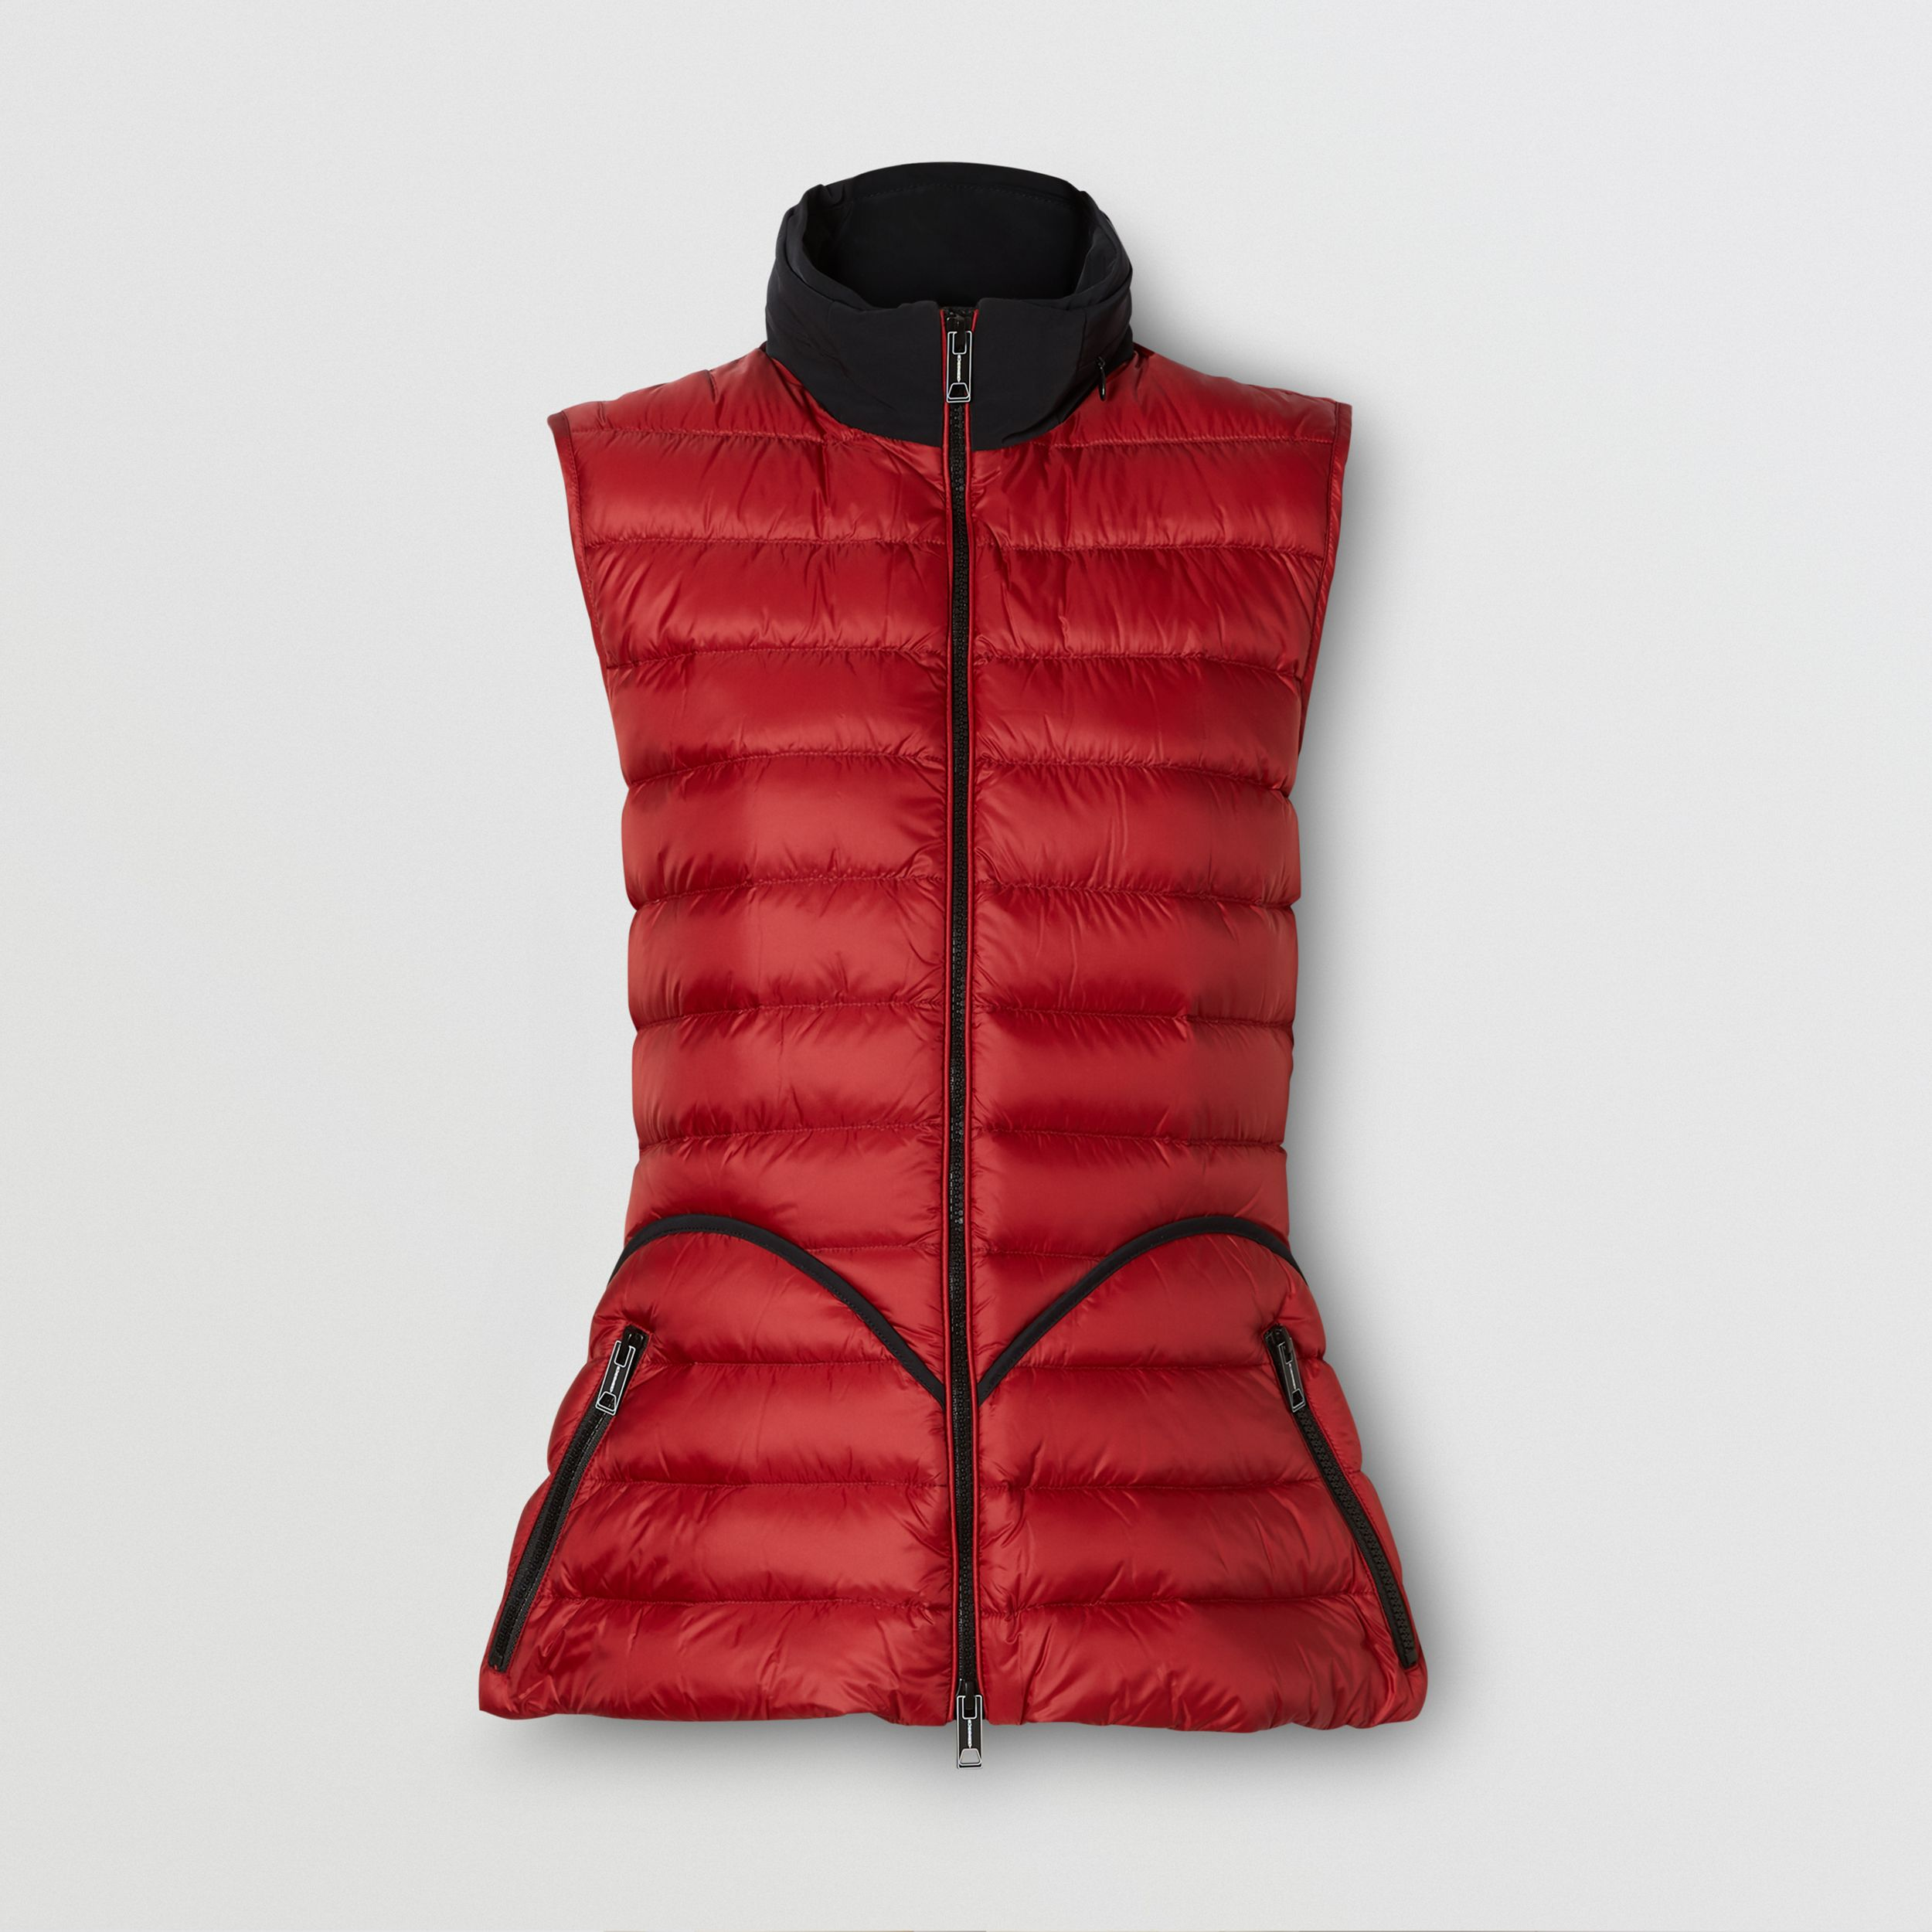 Packaway Hood Peplum Puffer Gilet in Dark Carmine - Women | Burberry - 4